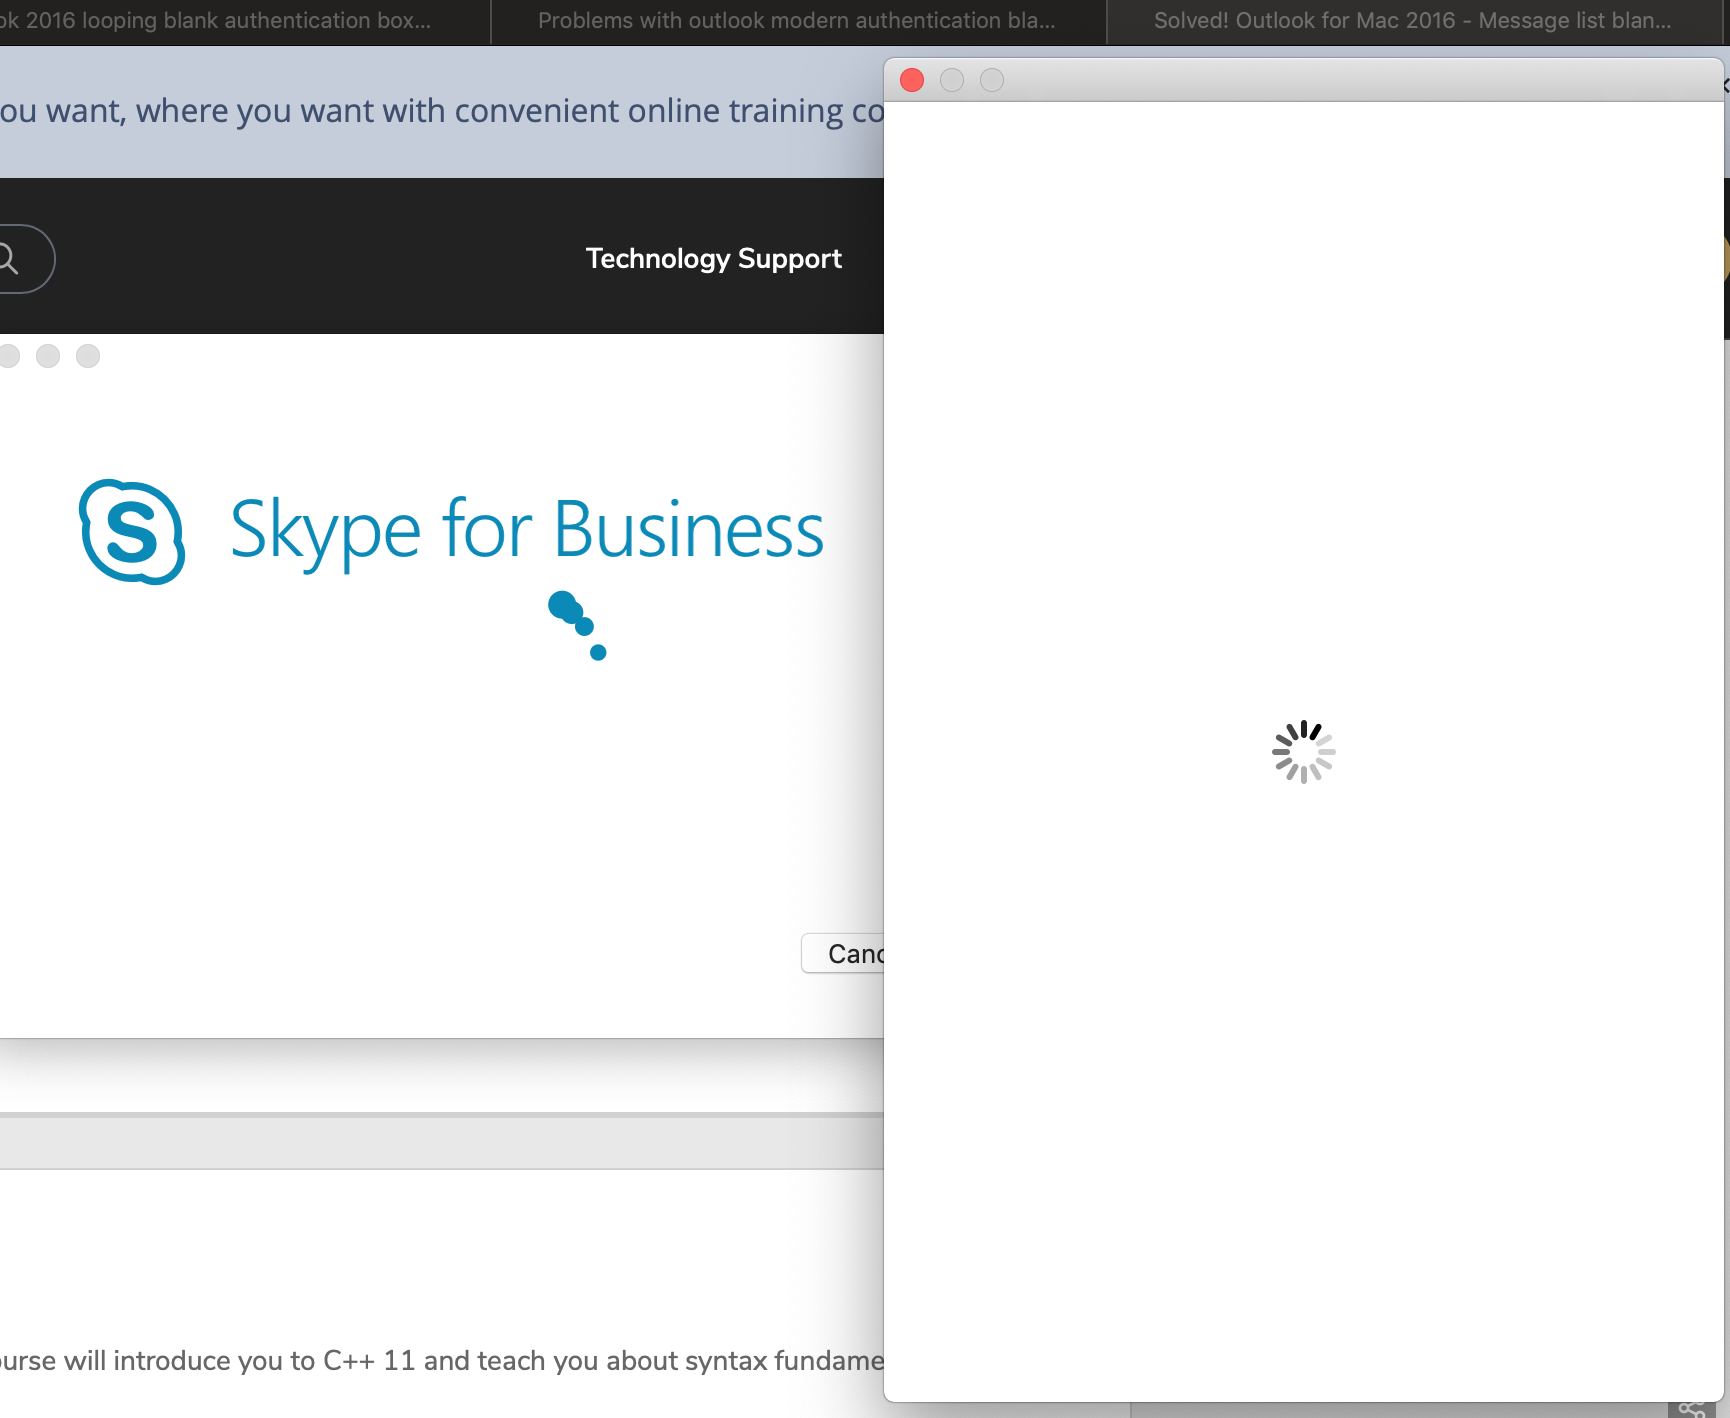 Skype for Business app and web app issues on OSX Mohave